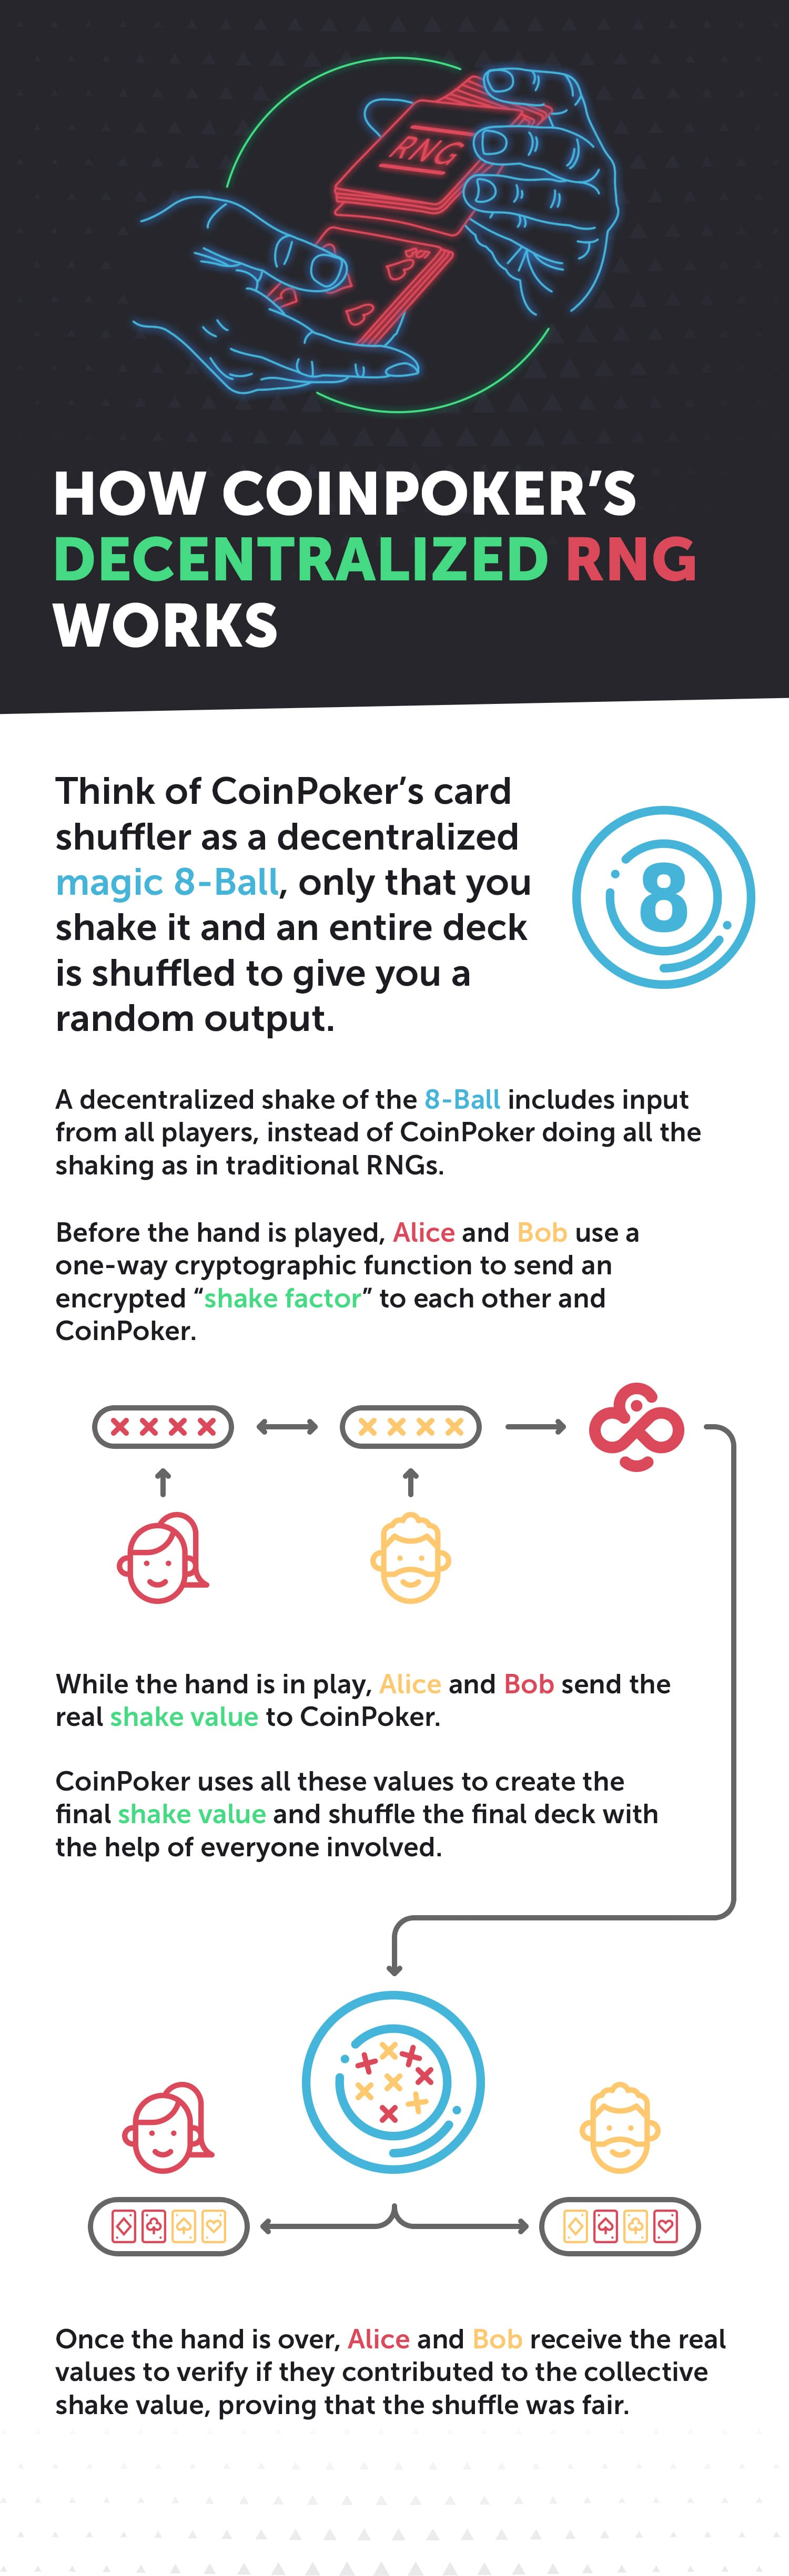 How CoinPoker's decentralized RNG works